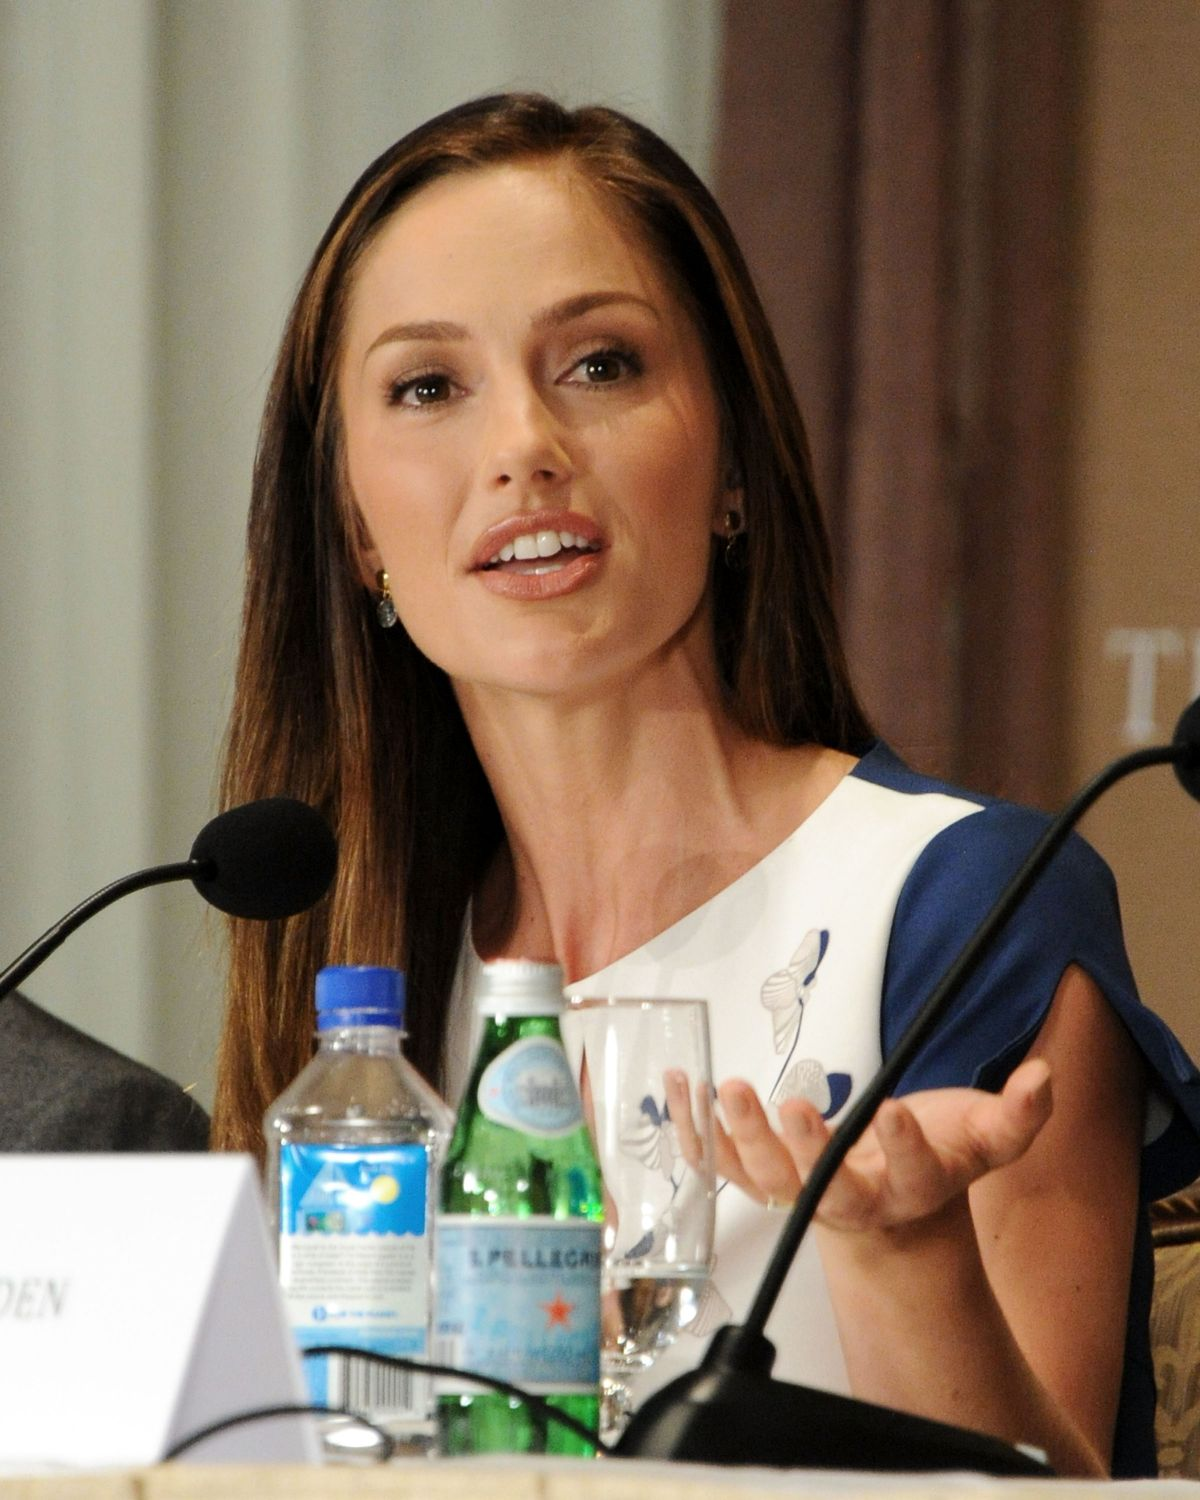 Minka Kelly At The Butler Press Conference In NYC